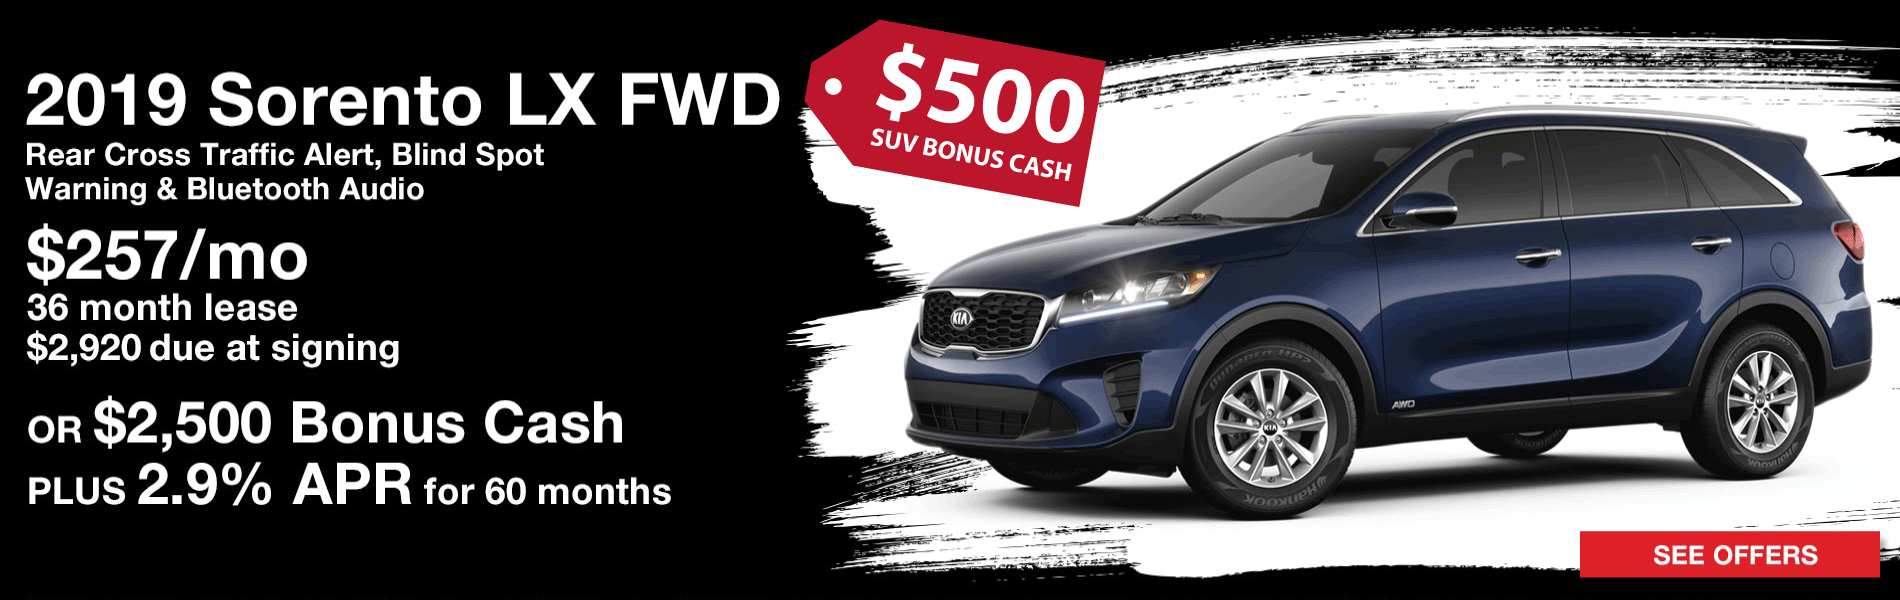 Lease a 2019 Kia Sorento LX FWD for $257 per month with $2,920 due at signing plus $500 SUV Bonus Cash